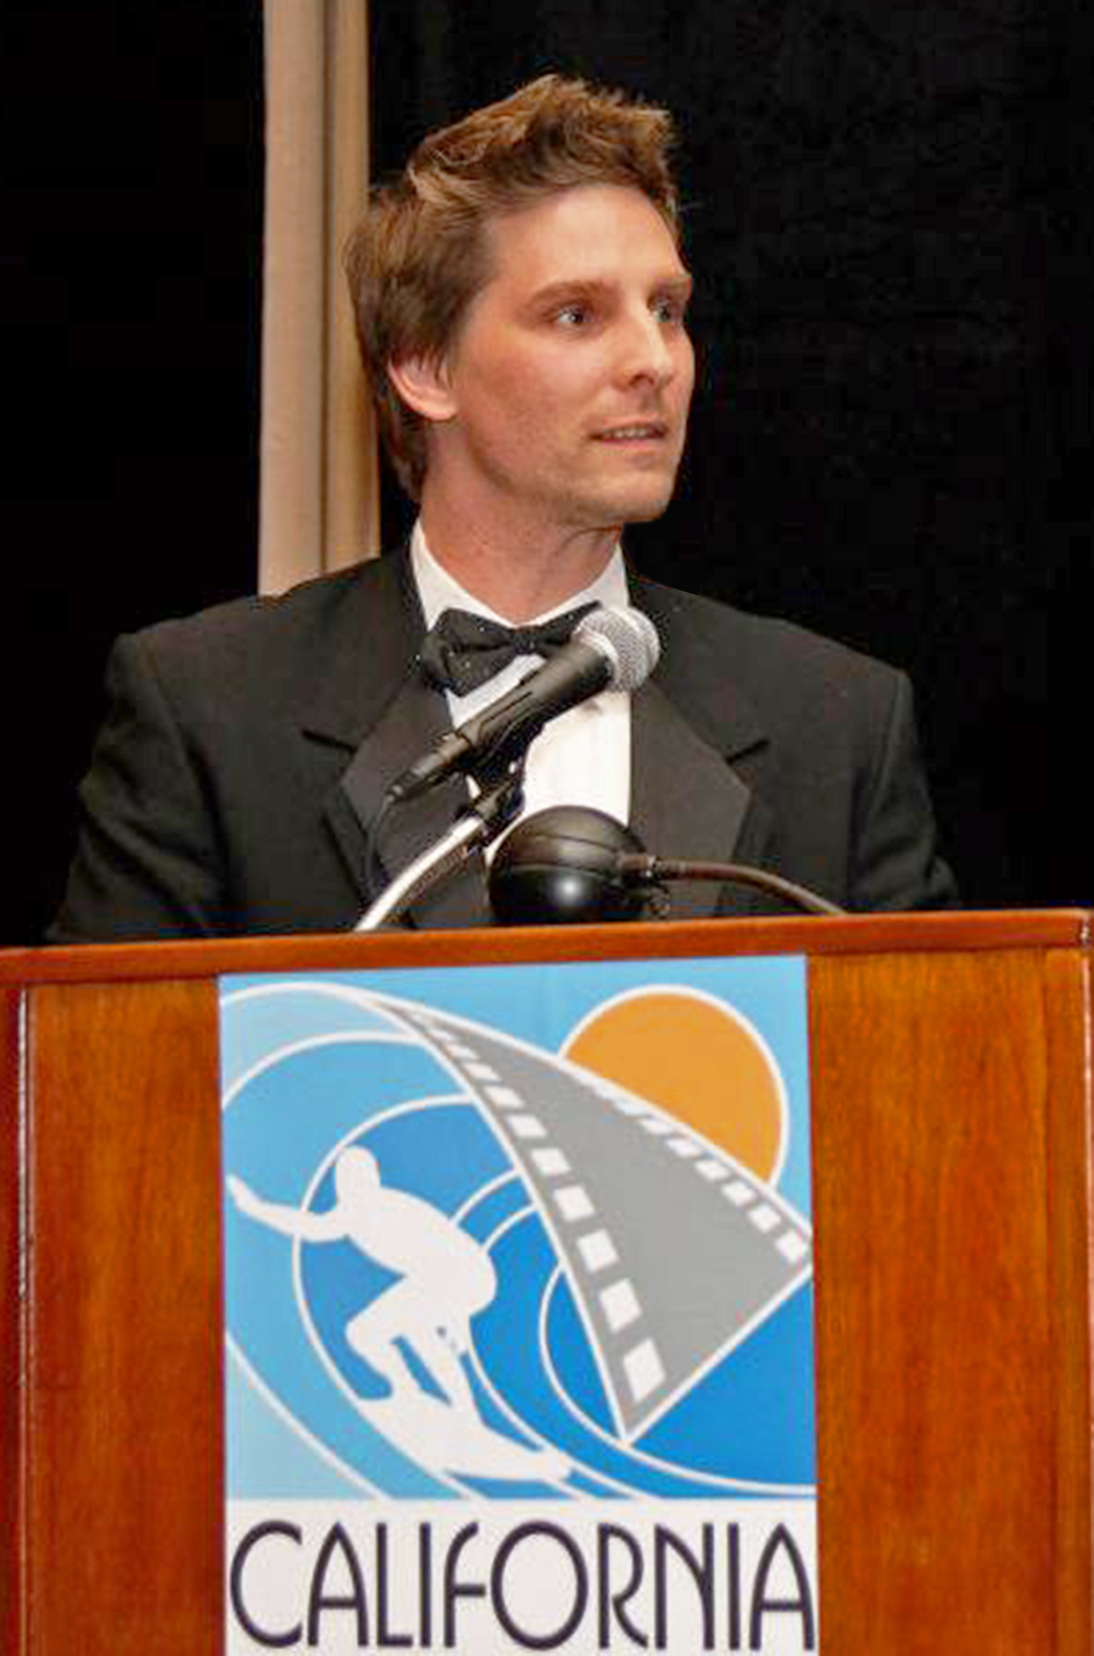 Doug Maguire at an event for Bank Roll (2012)